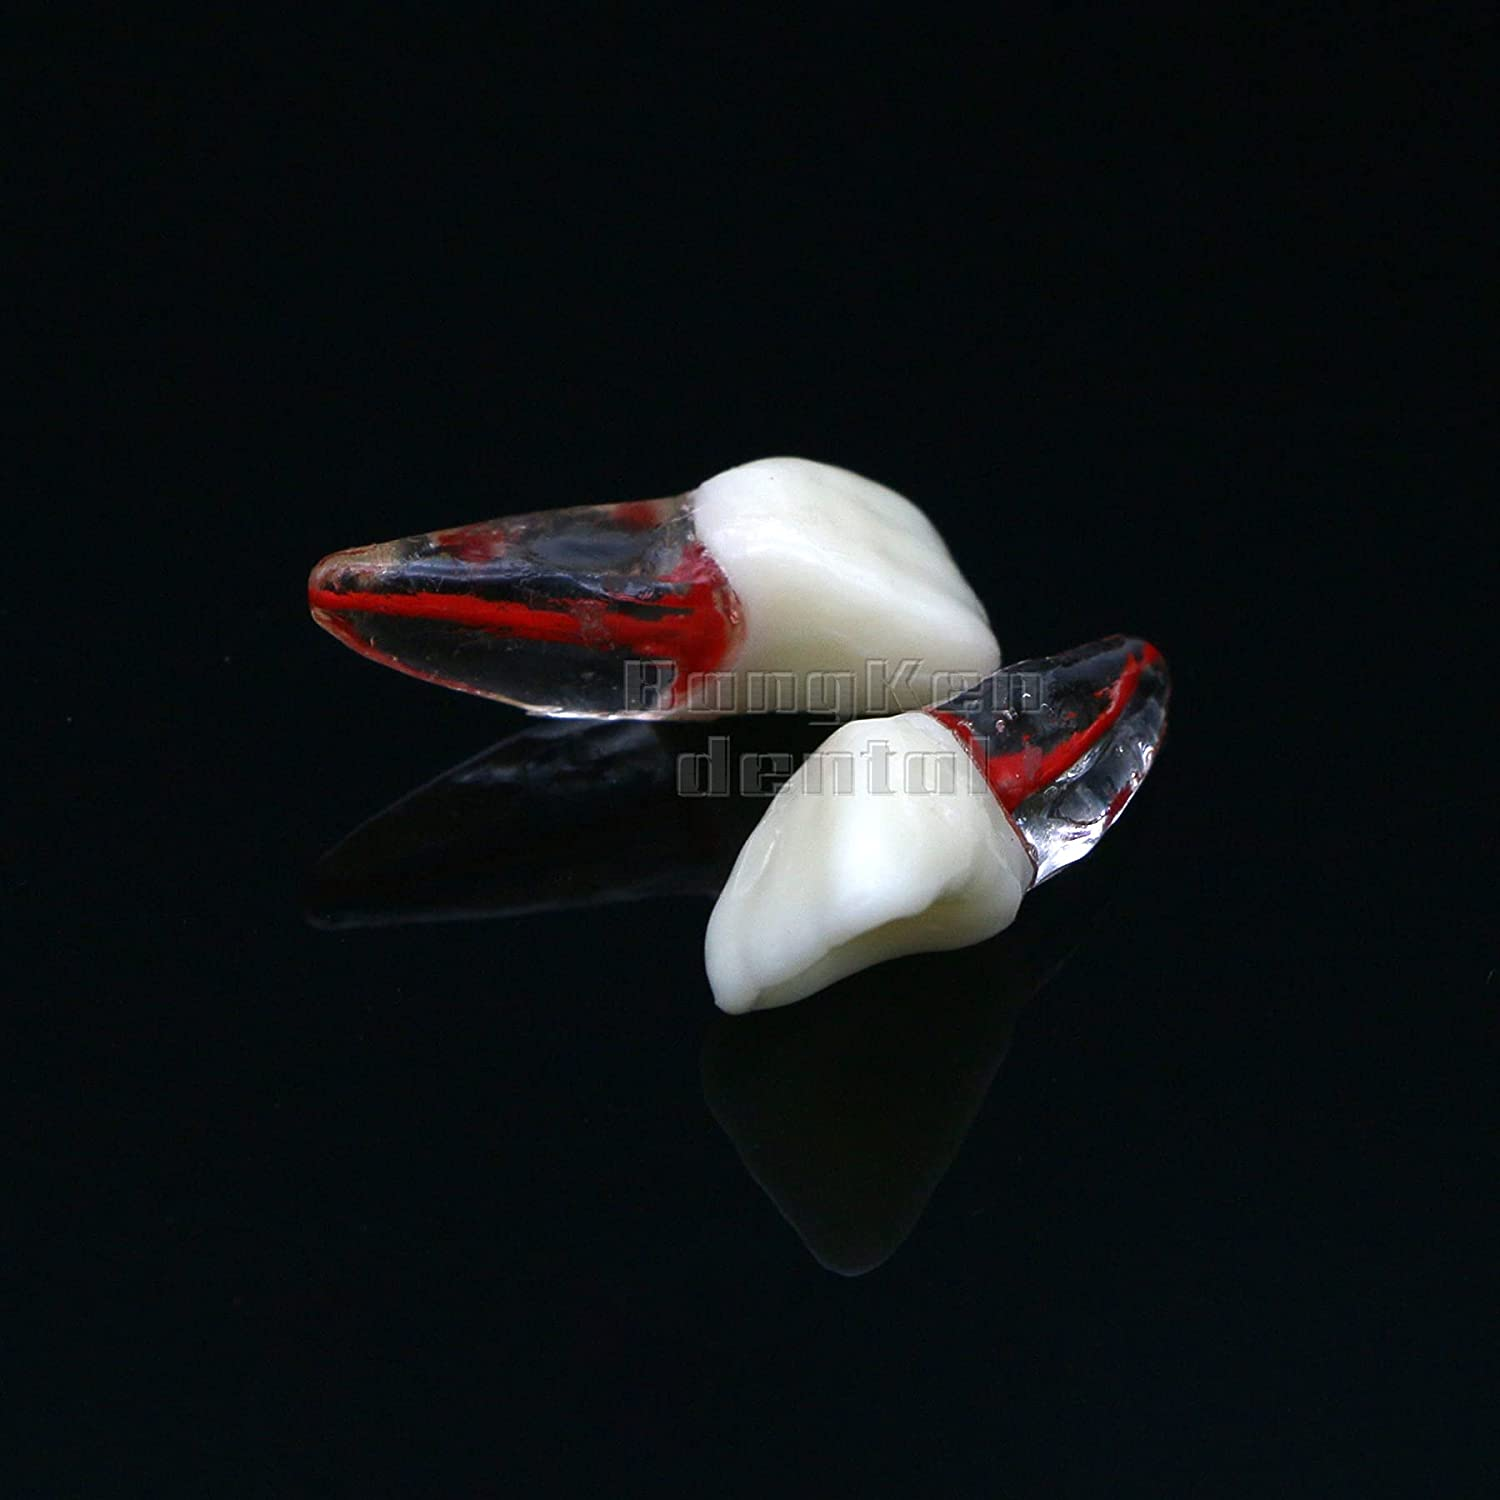 TIIAZHUU Max 80% OFF Dental Tooth Models Seattle Mall Typodont Endod RCT Canal Teeth Root